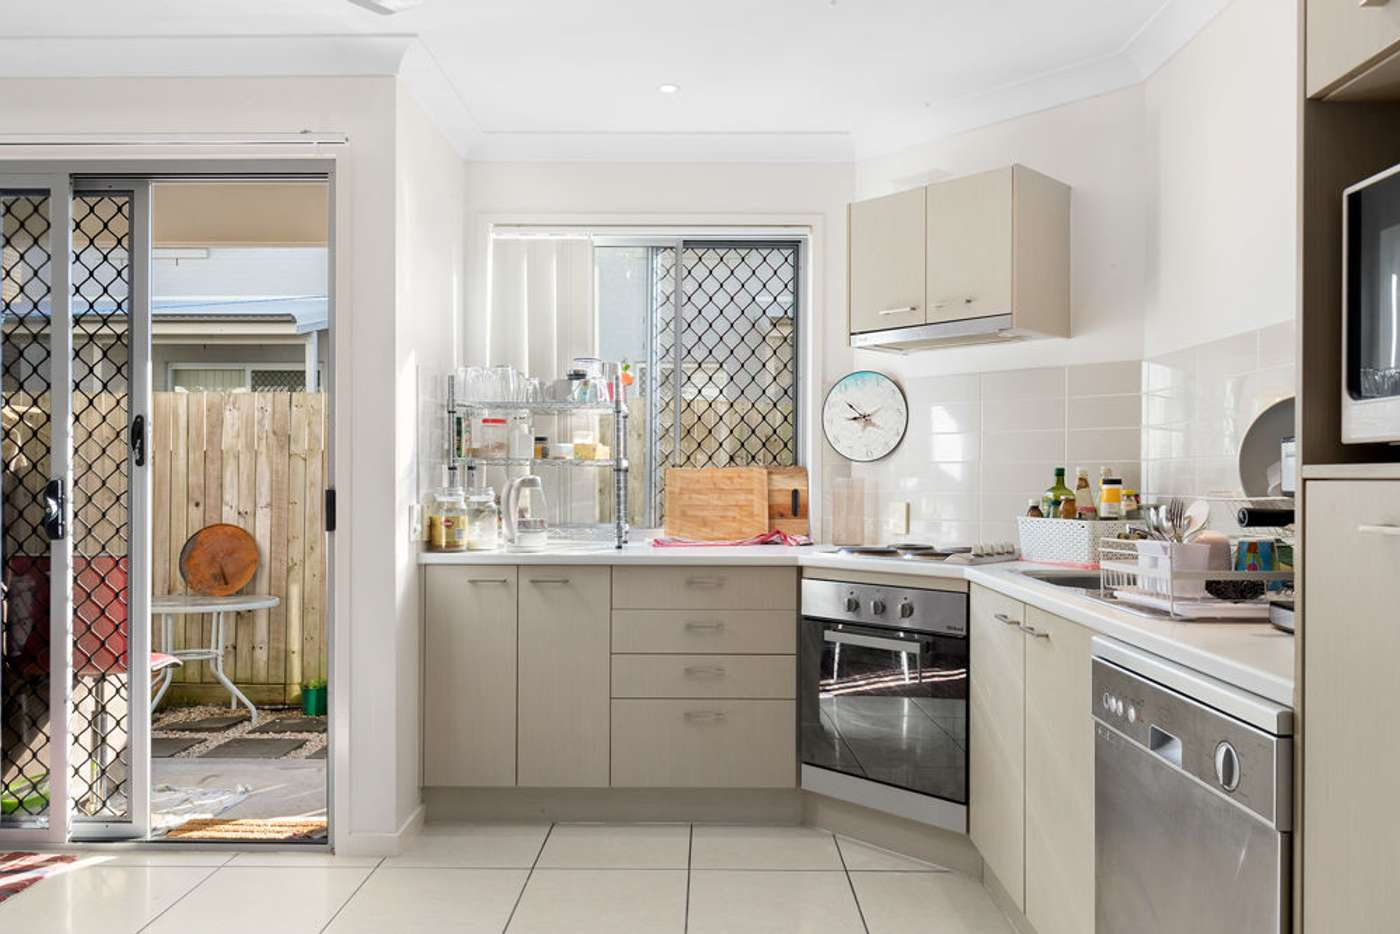 Fifth view of Homely townhouse listing, 9/16 David Street, Burpengary QLD 4505